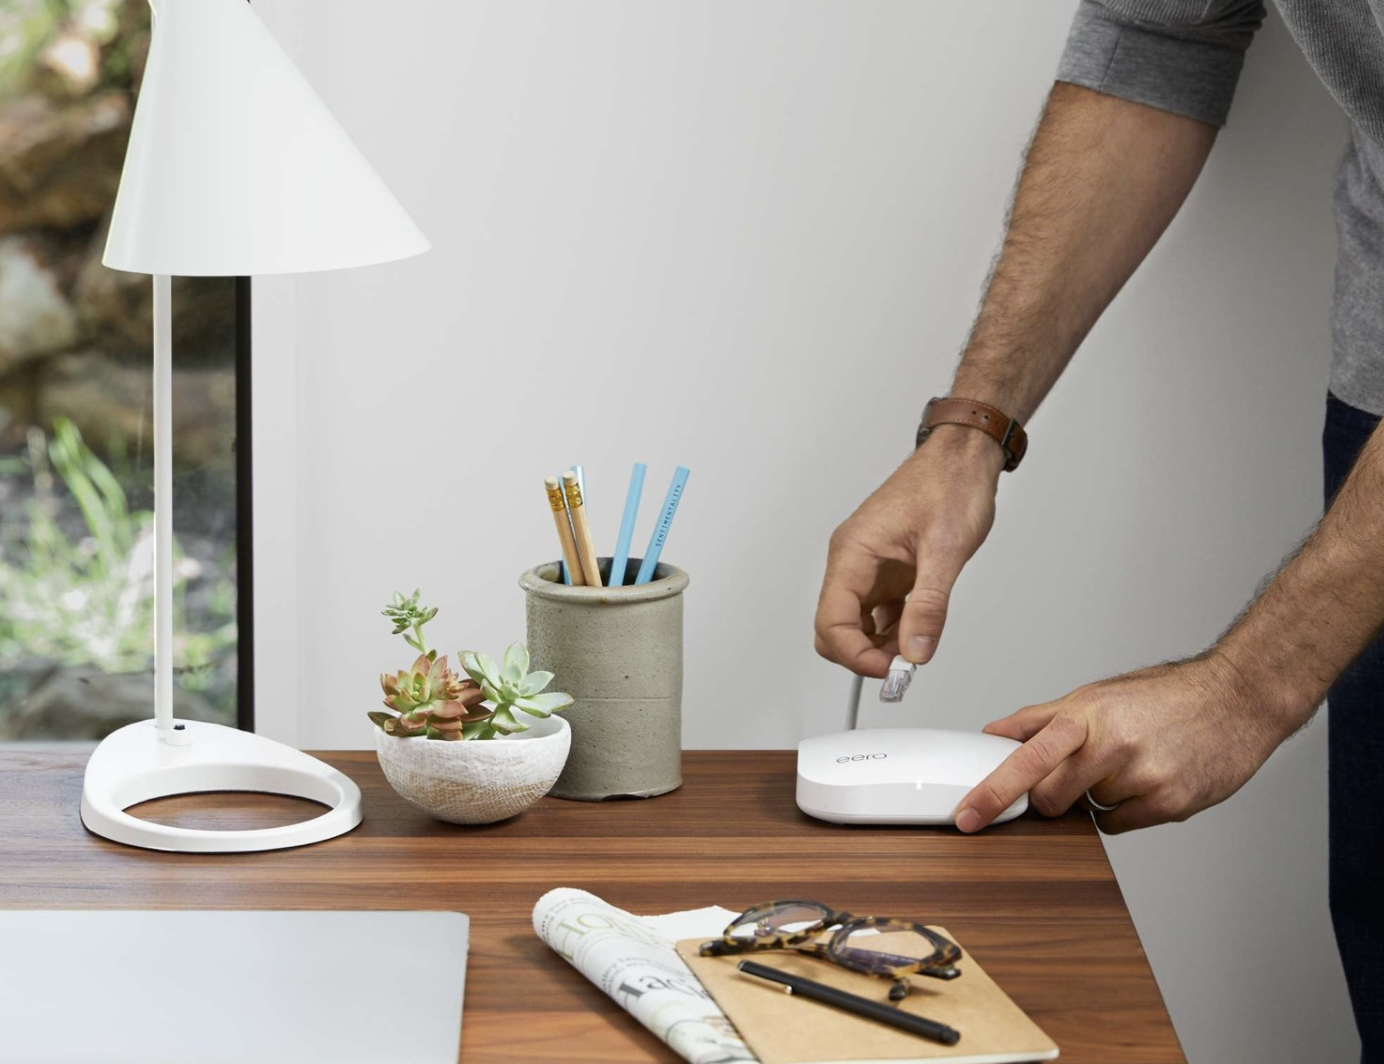 Set Up a Whole Home WiFi System with the Eero Pro Mesh Wi-Fi System, Now Only $255